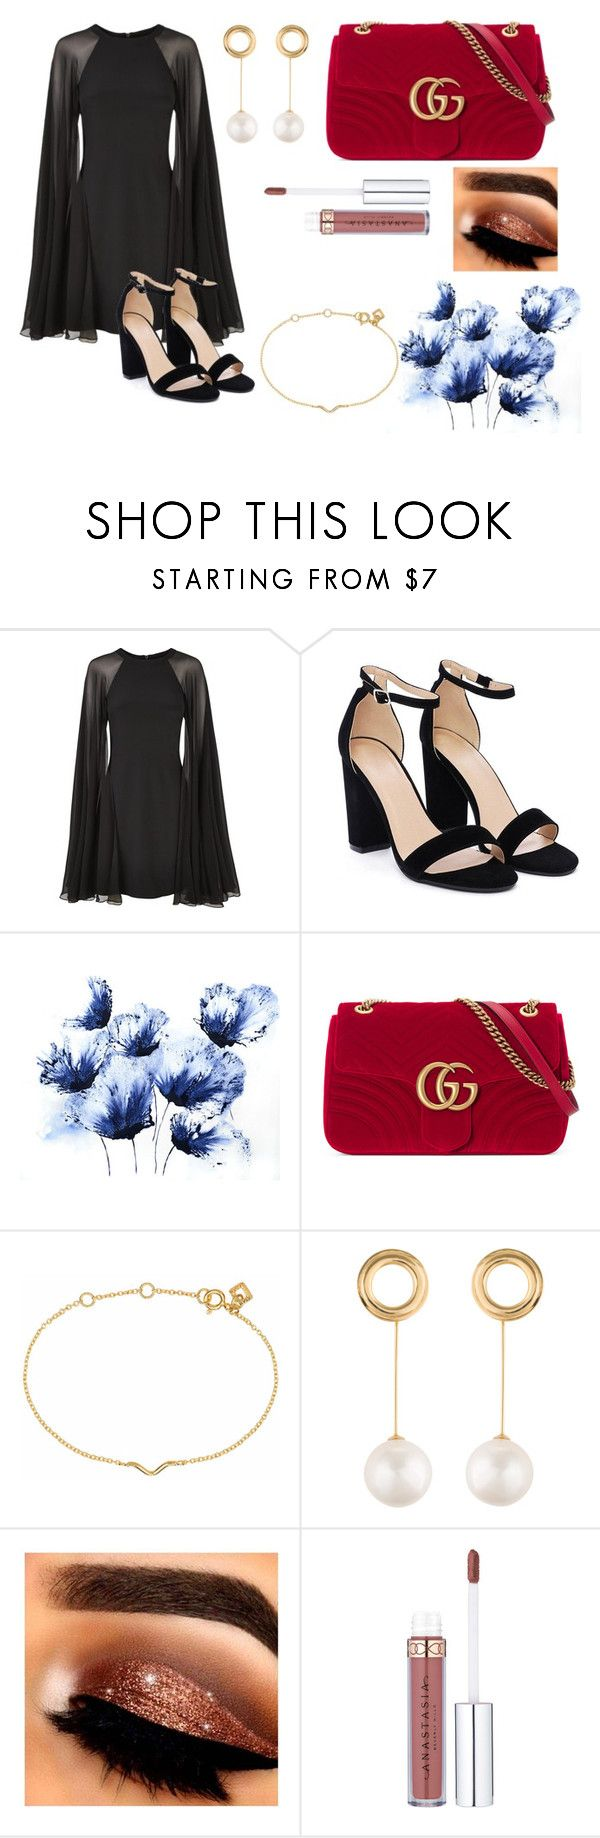 """""""Untitled #2"""" by morganbrooke2003 ❤ liked on Polyvore featuring Karl Lagerfeld, Nasty Gal, Gucci, Maya Magal and Joanna Laura Constantine"""